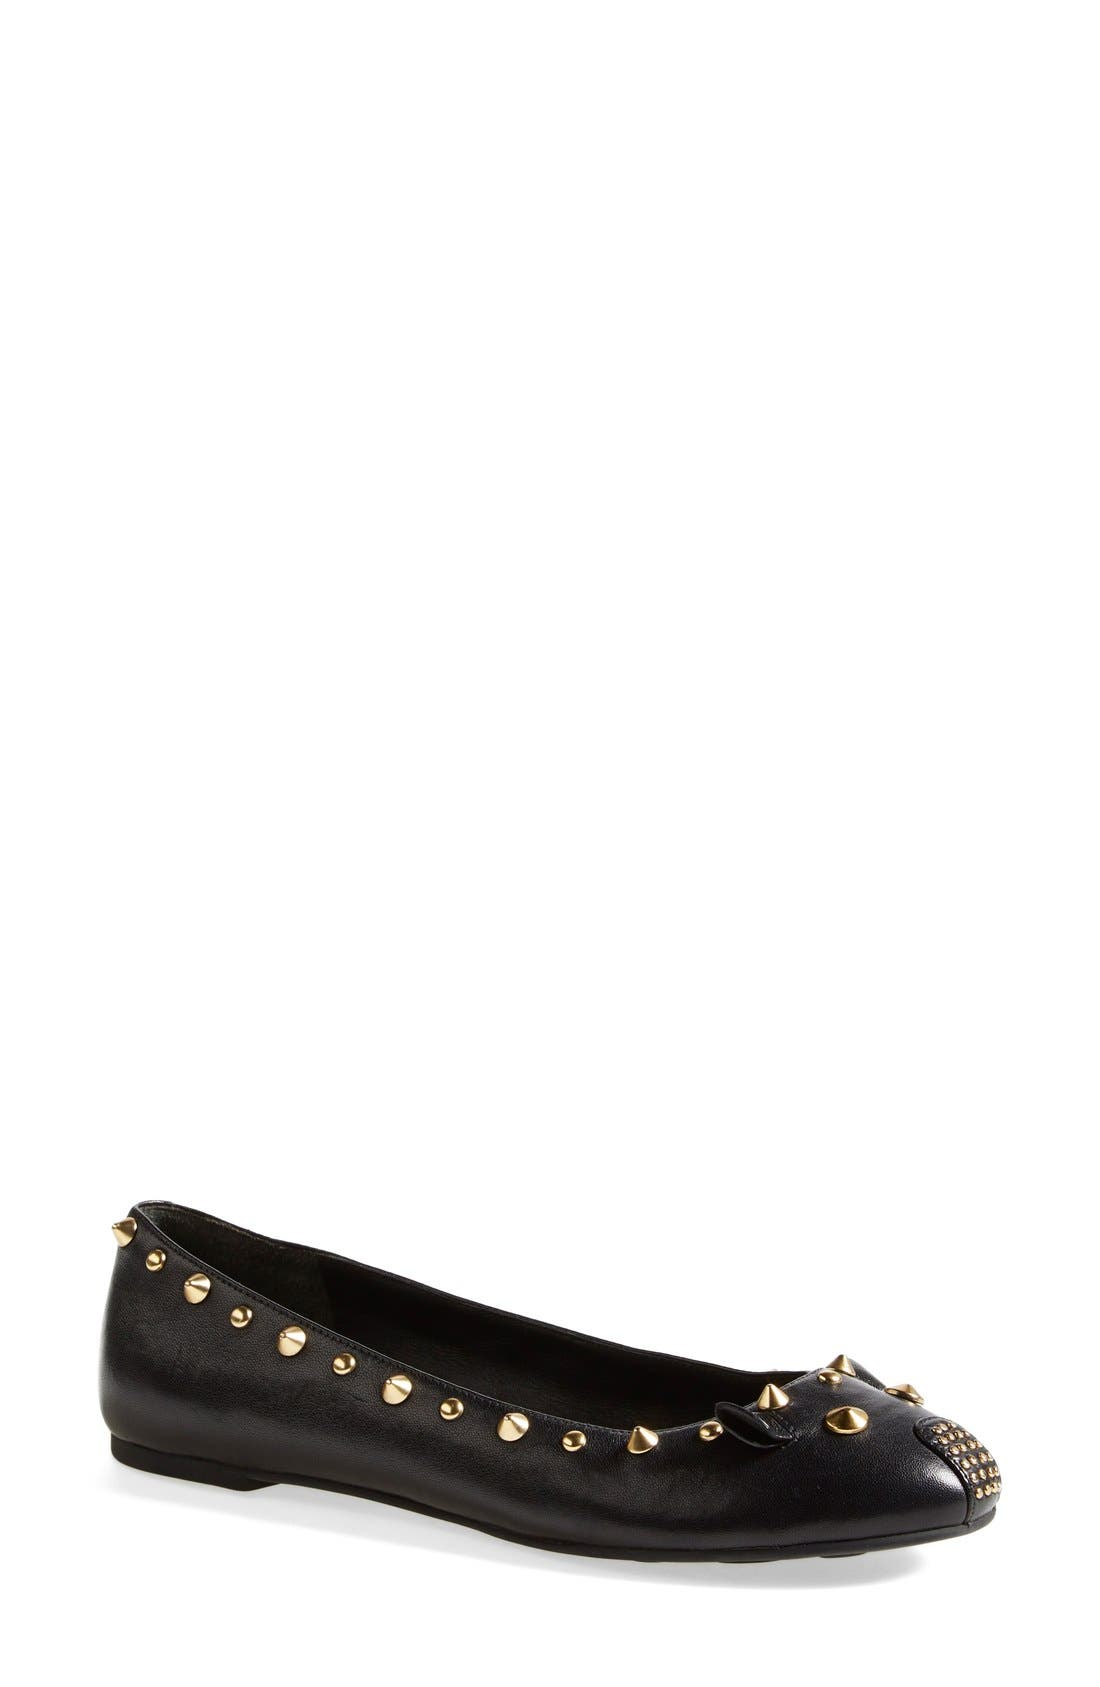 MARC BY MARC JACOBS 'Punk Mouse' Ballerina Flat,                         Main,                         color, 001